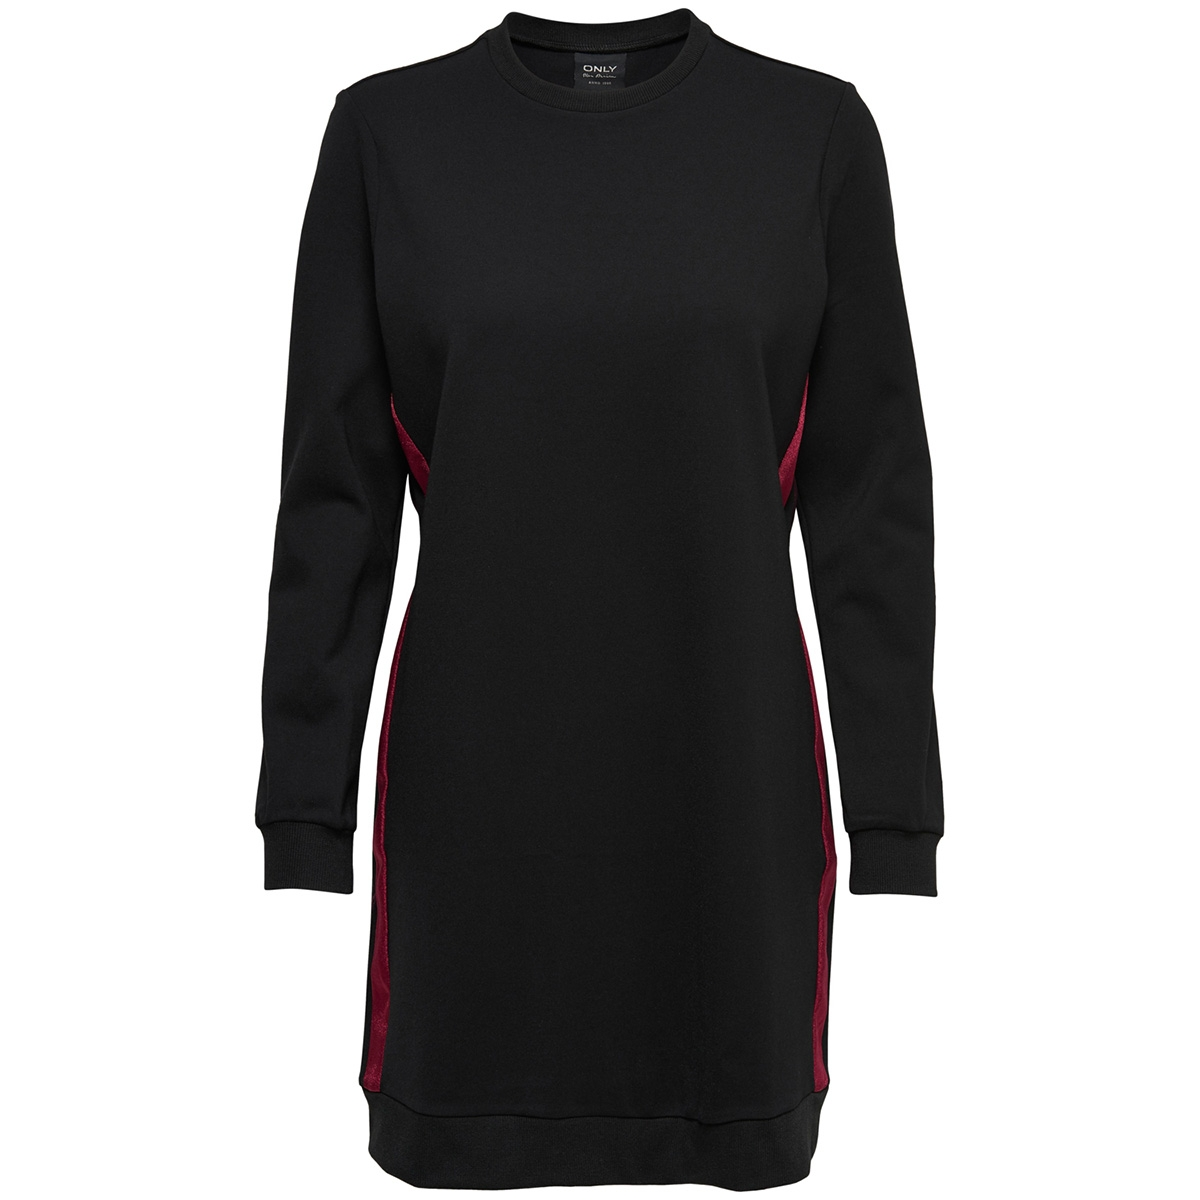 onlpoptrash easy twix sweatdress pn 15165903 only jurk black/red